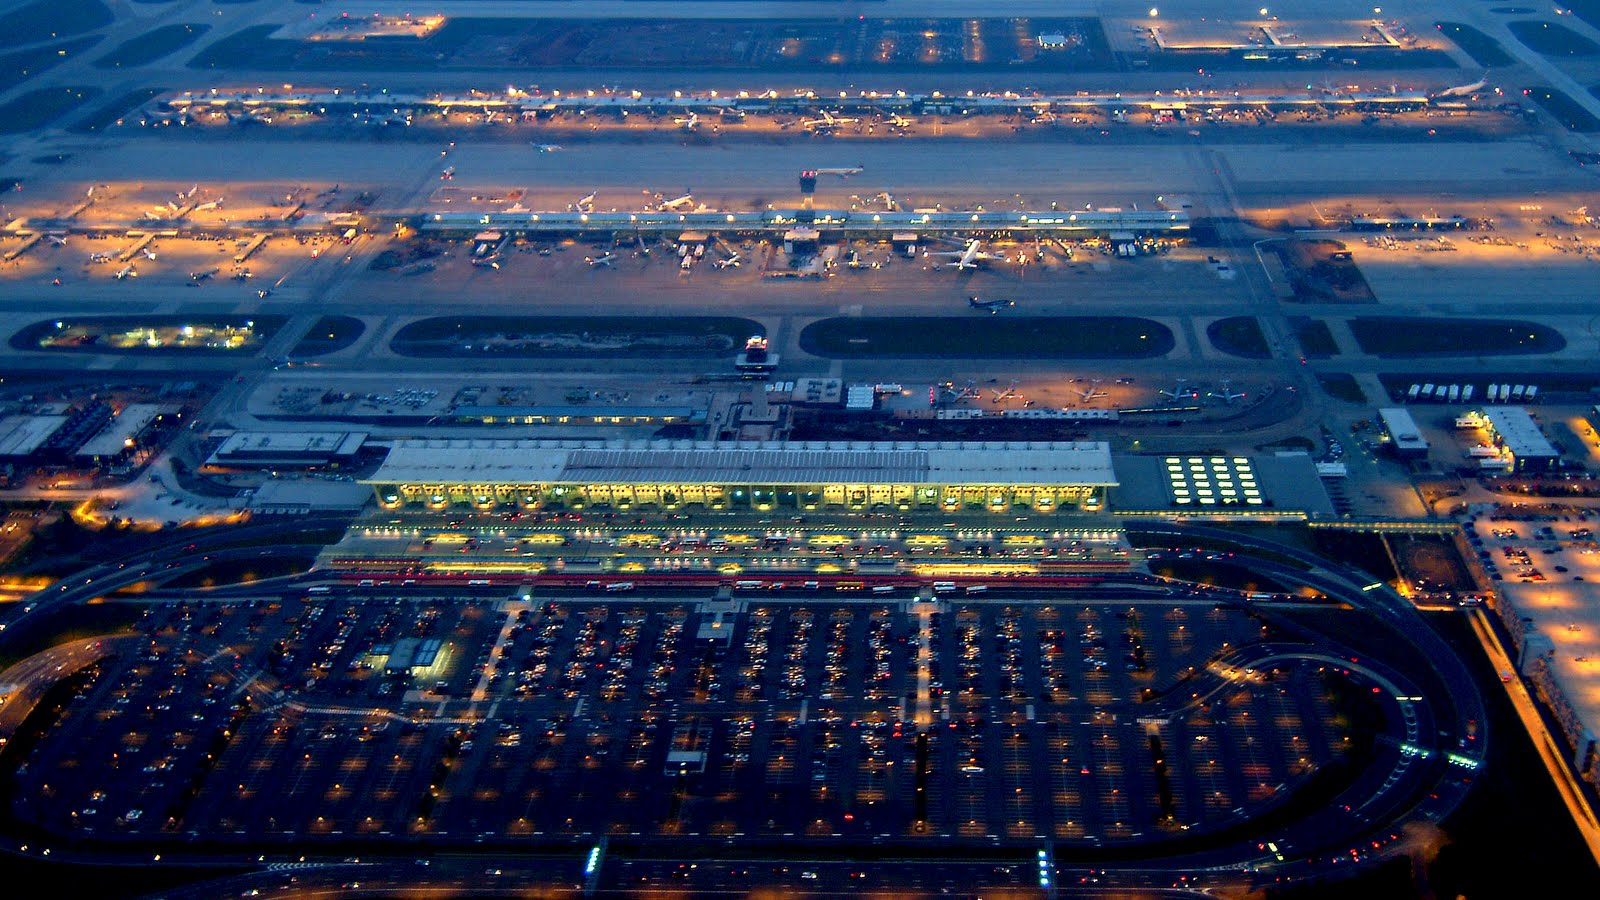 hong kong international airport at night